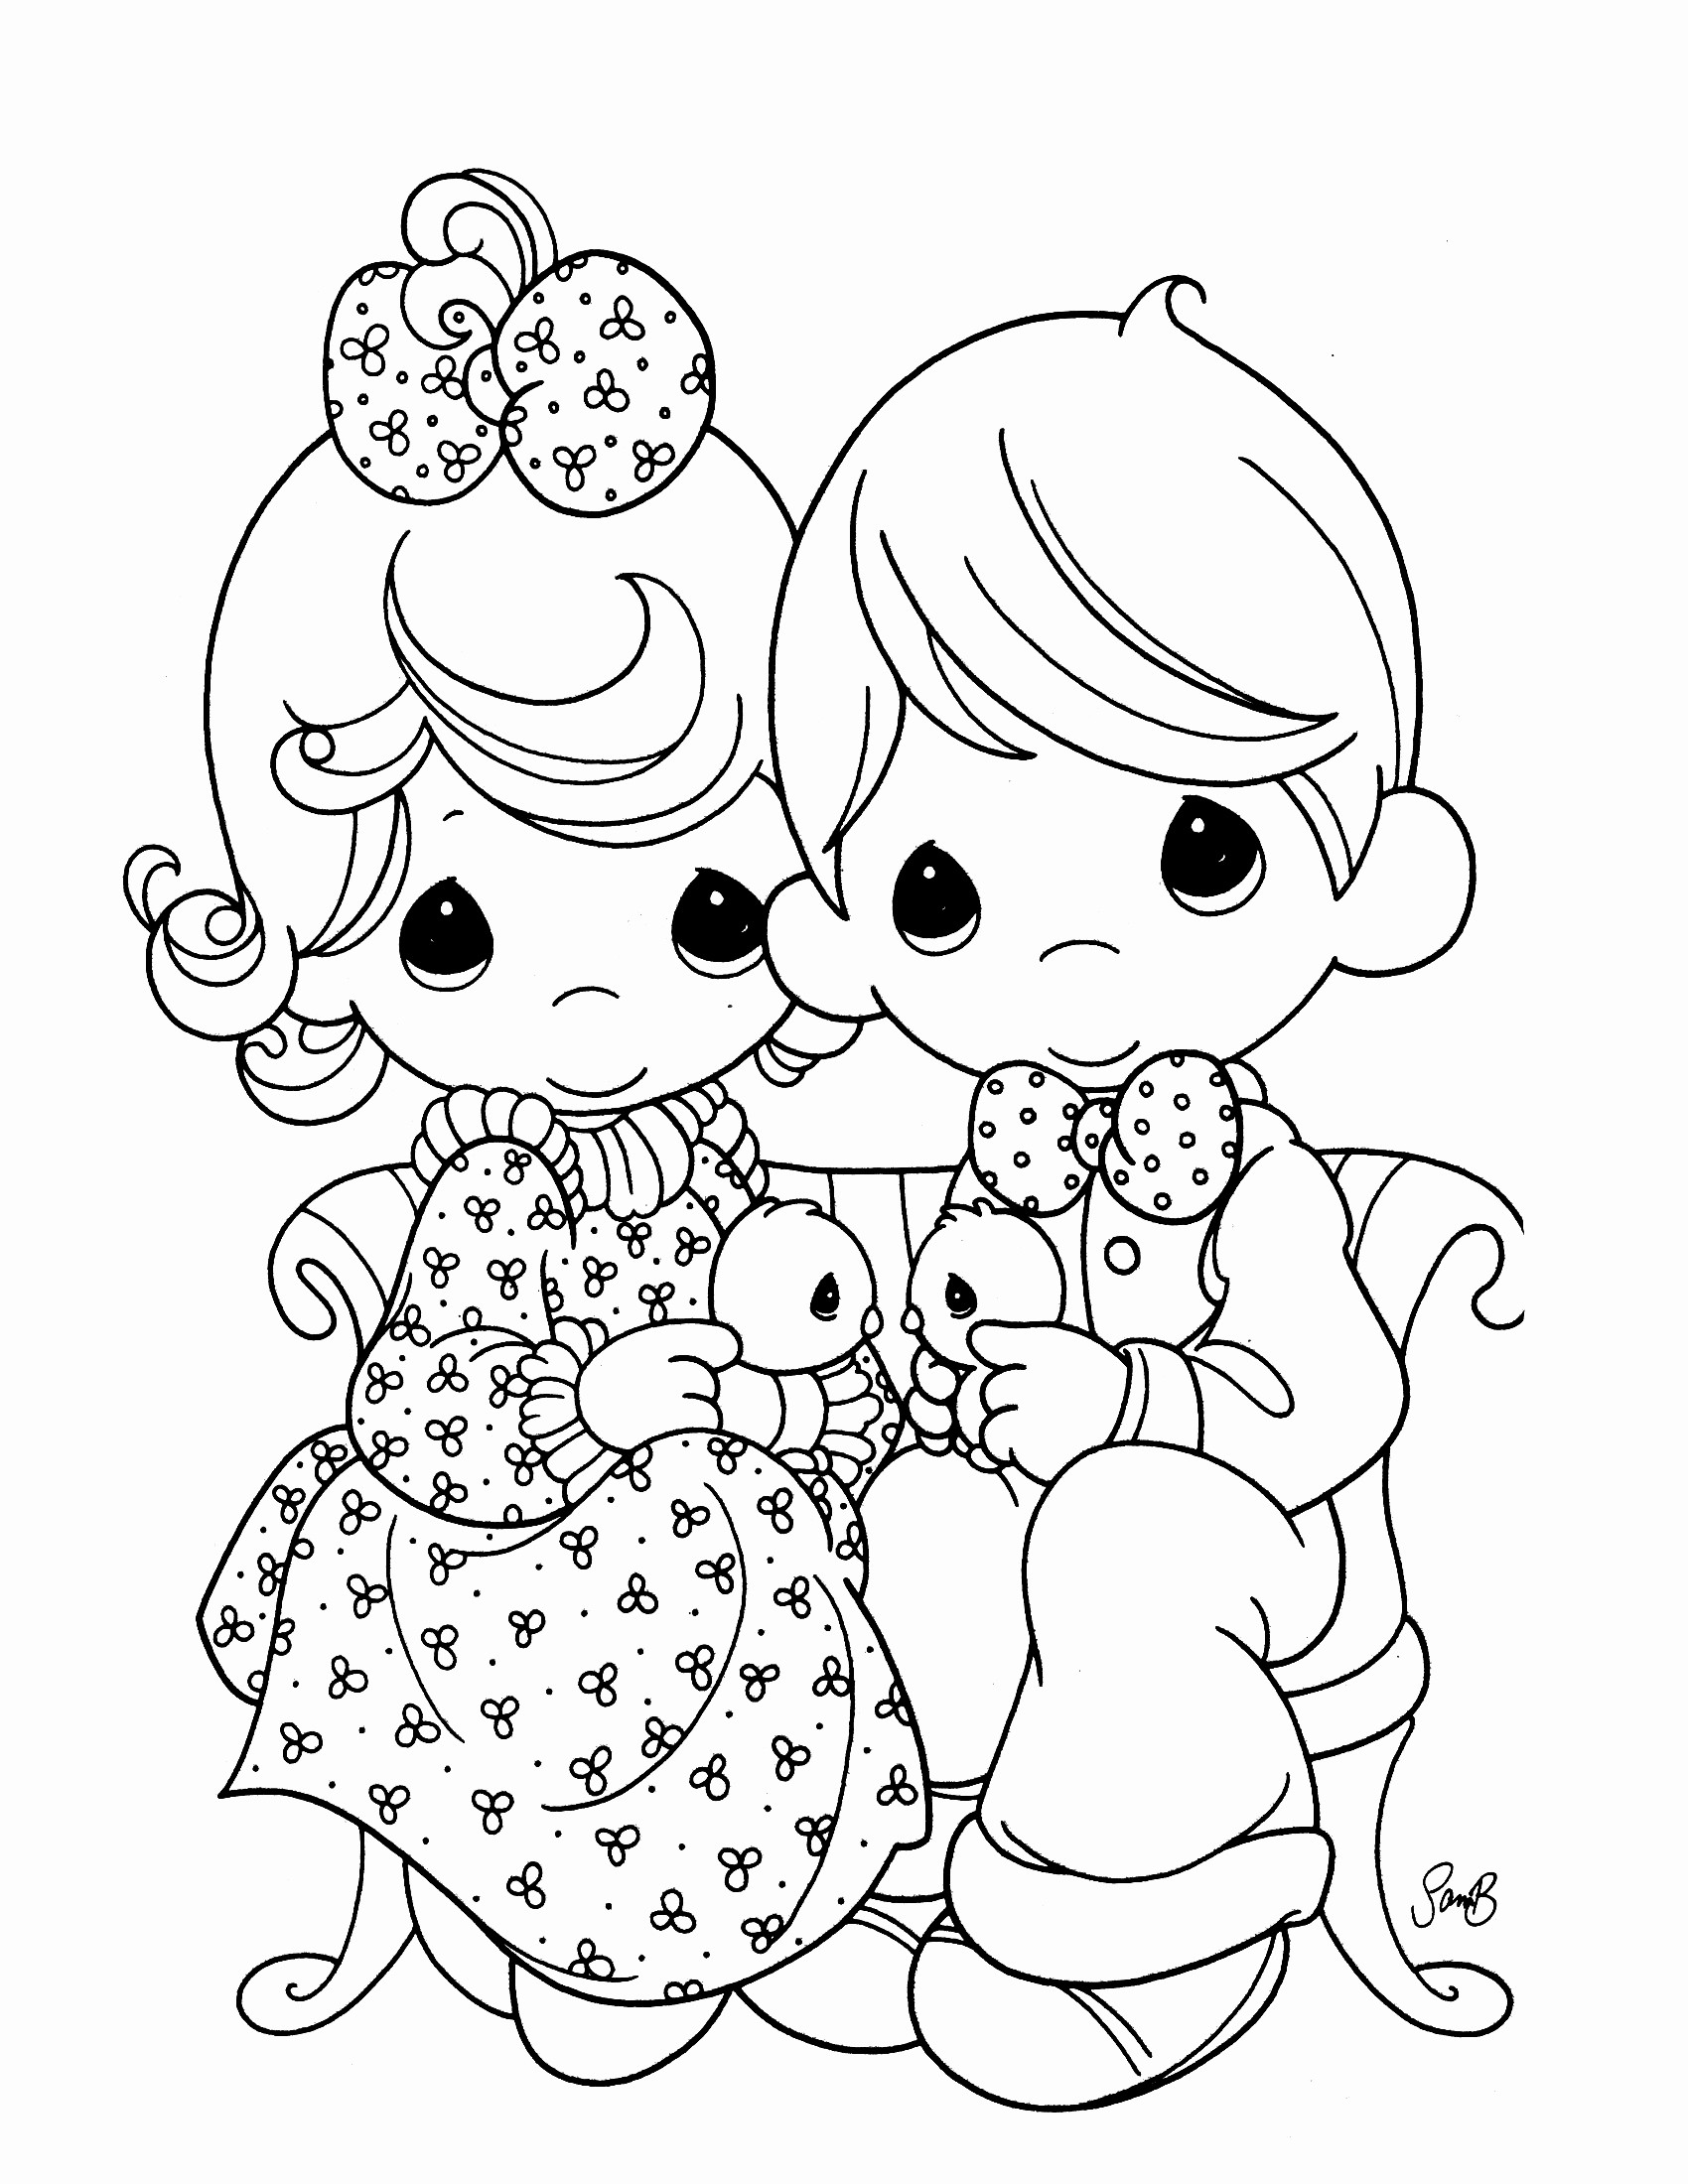 precious moments coloring books precious moments for love coloring pages gtgt disney books coloring moments precious